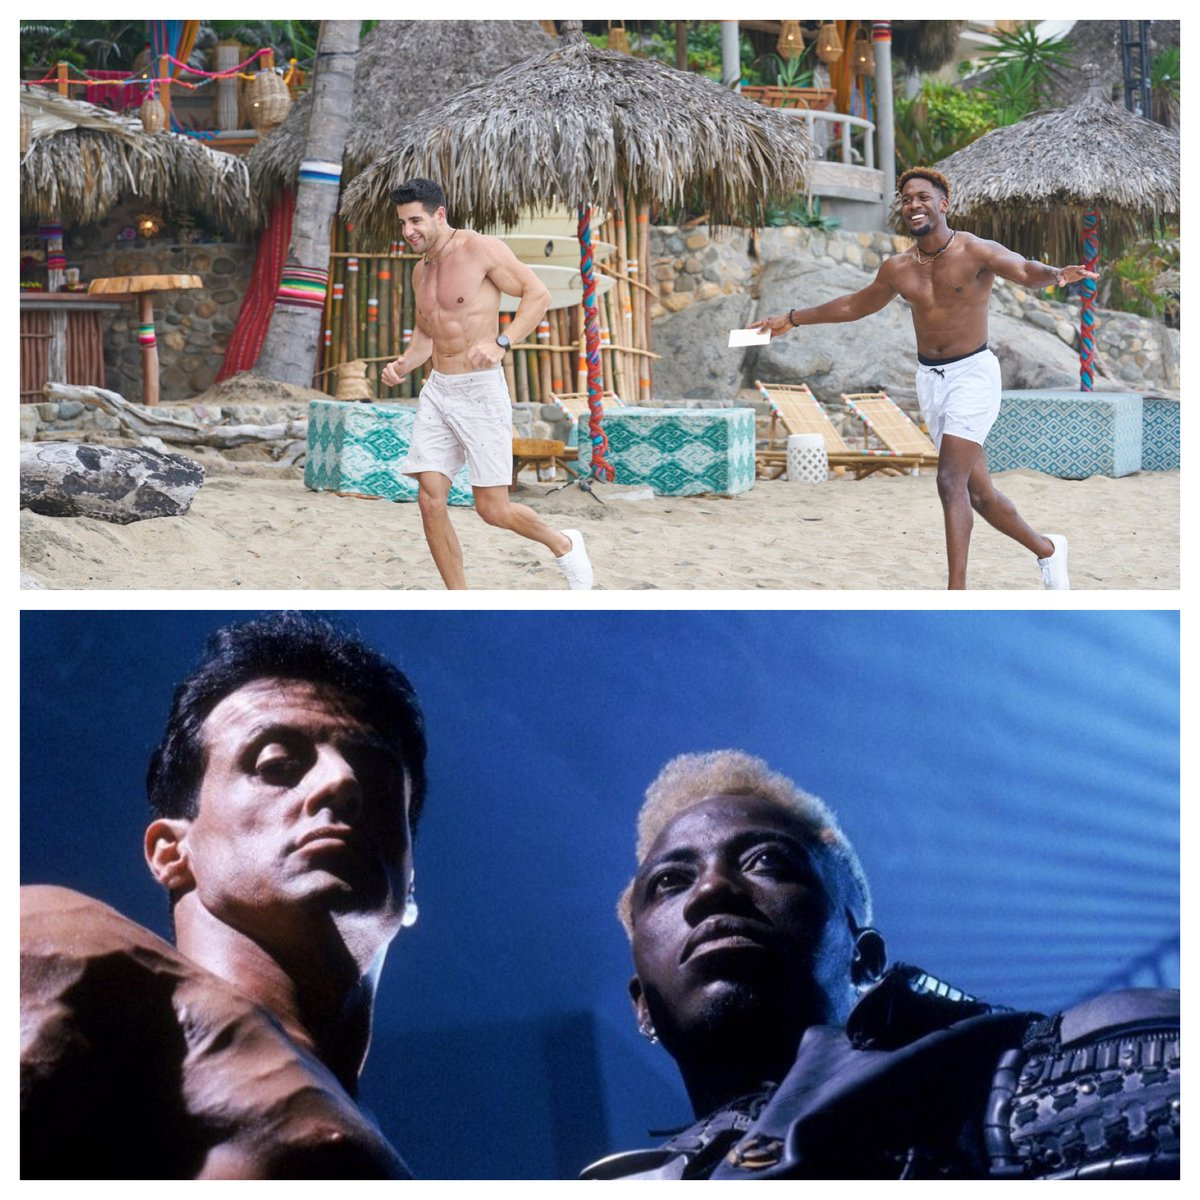 """Did you guys know that Ed and Demar starred in the 1994 cinematic hit """"Demolition Man?"""" @BachParadise https://t.co/ekU1YPBXWD"""